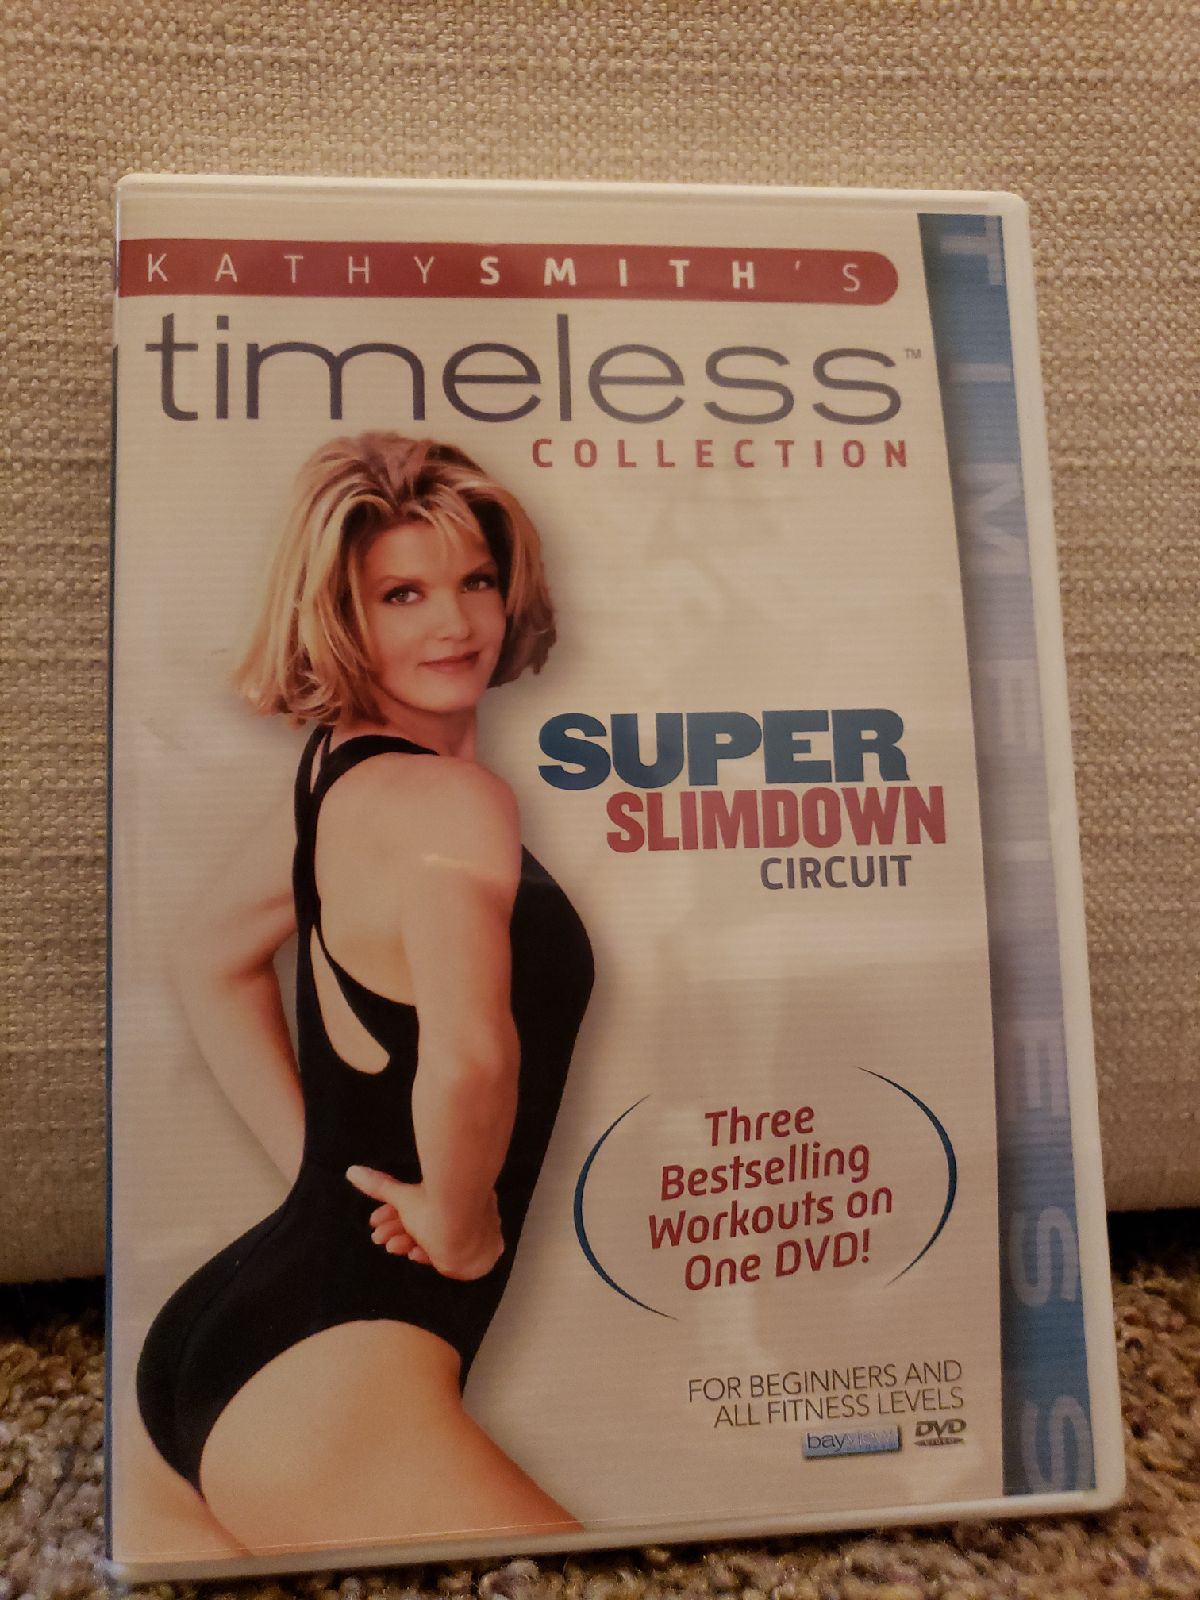 Kathy Smith's Timeless Collection DVD